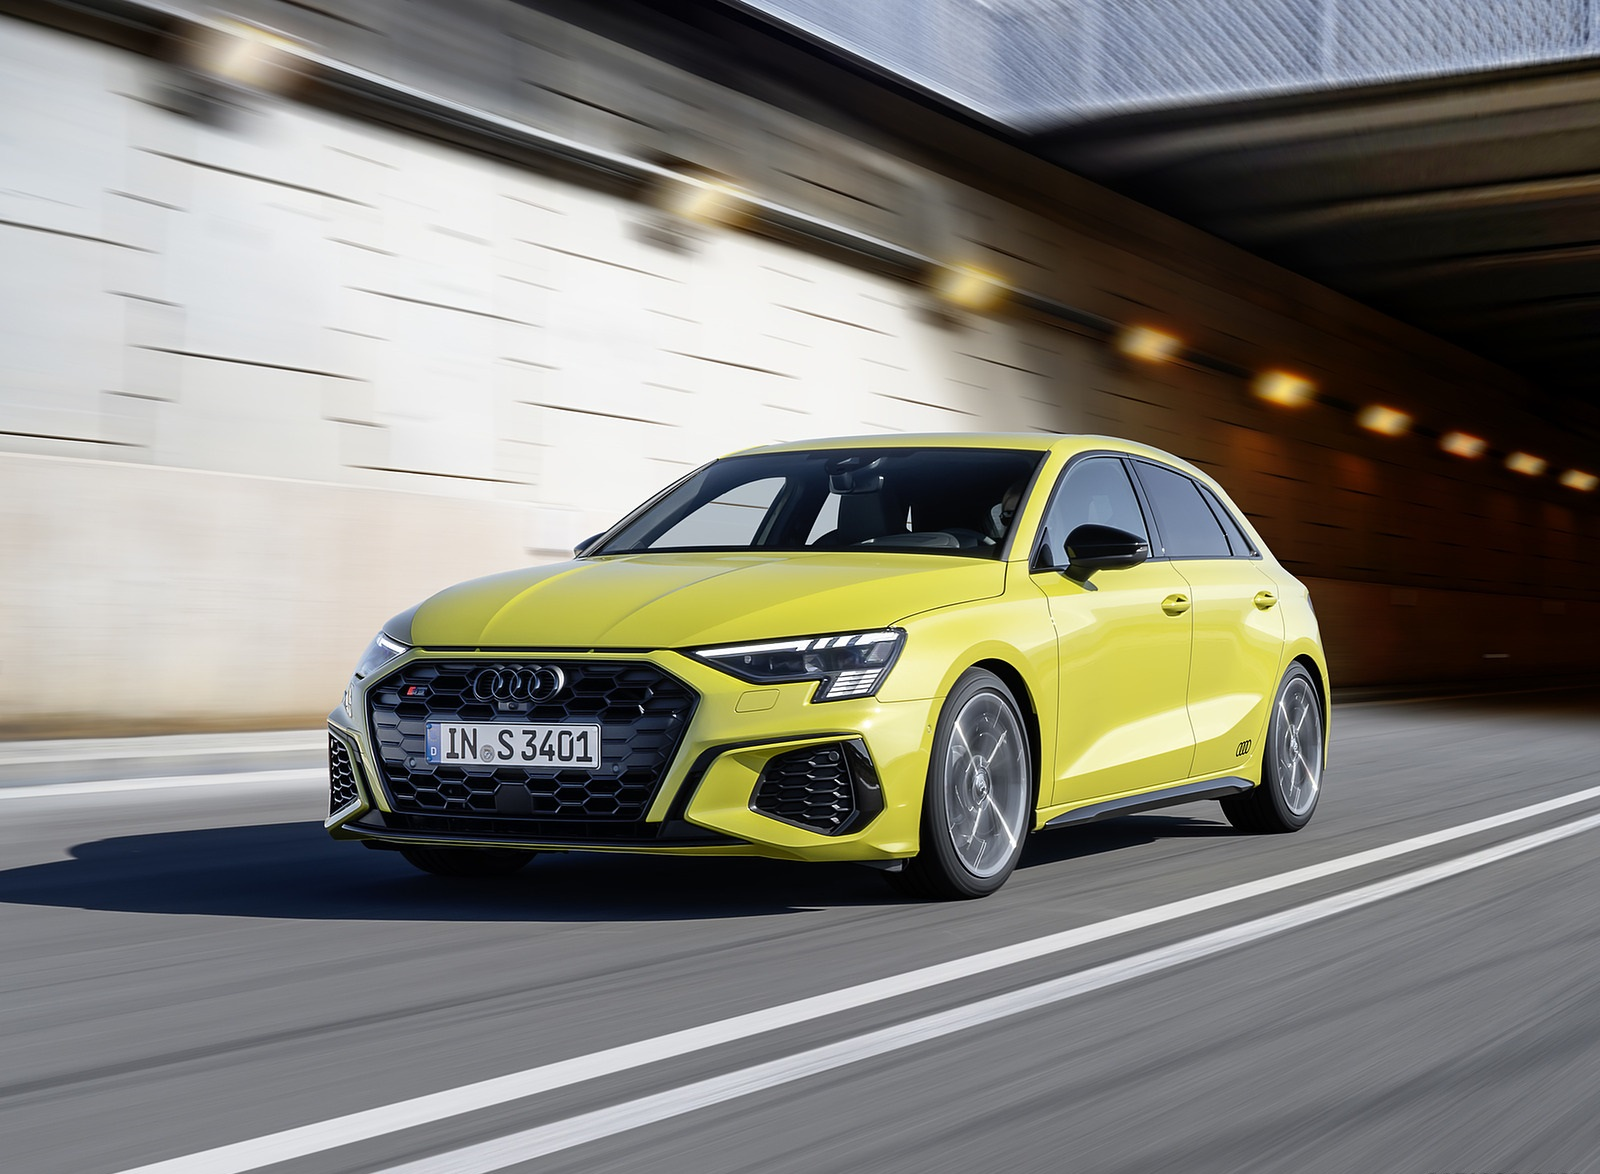 2021 Audi S3 Sportback (Color: Python Yellow) Front Three-Quarter Wallpapers (7)